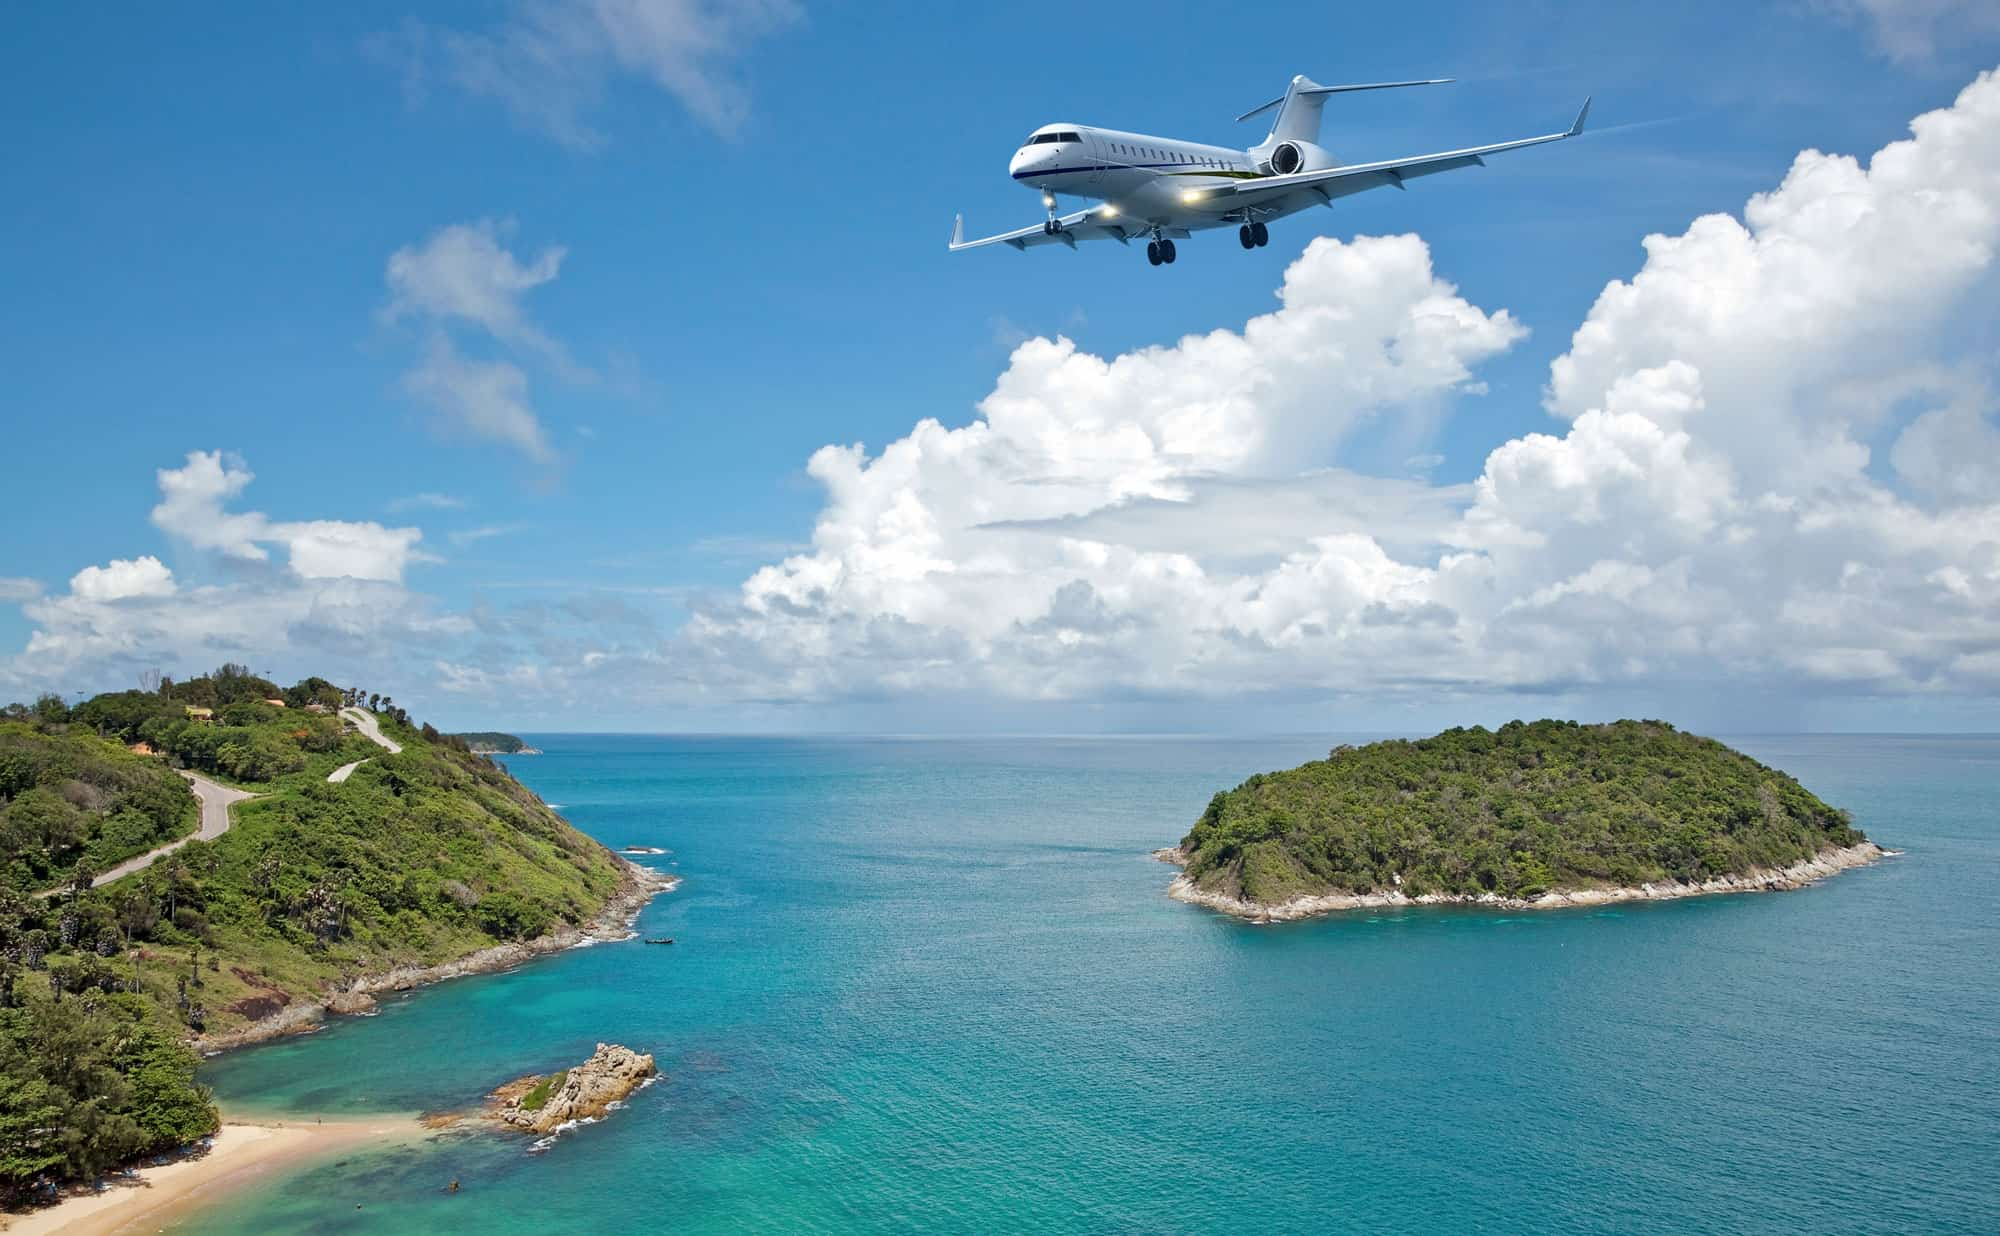 Private Jet Flying along the Coastline